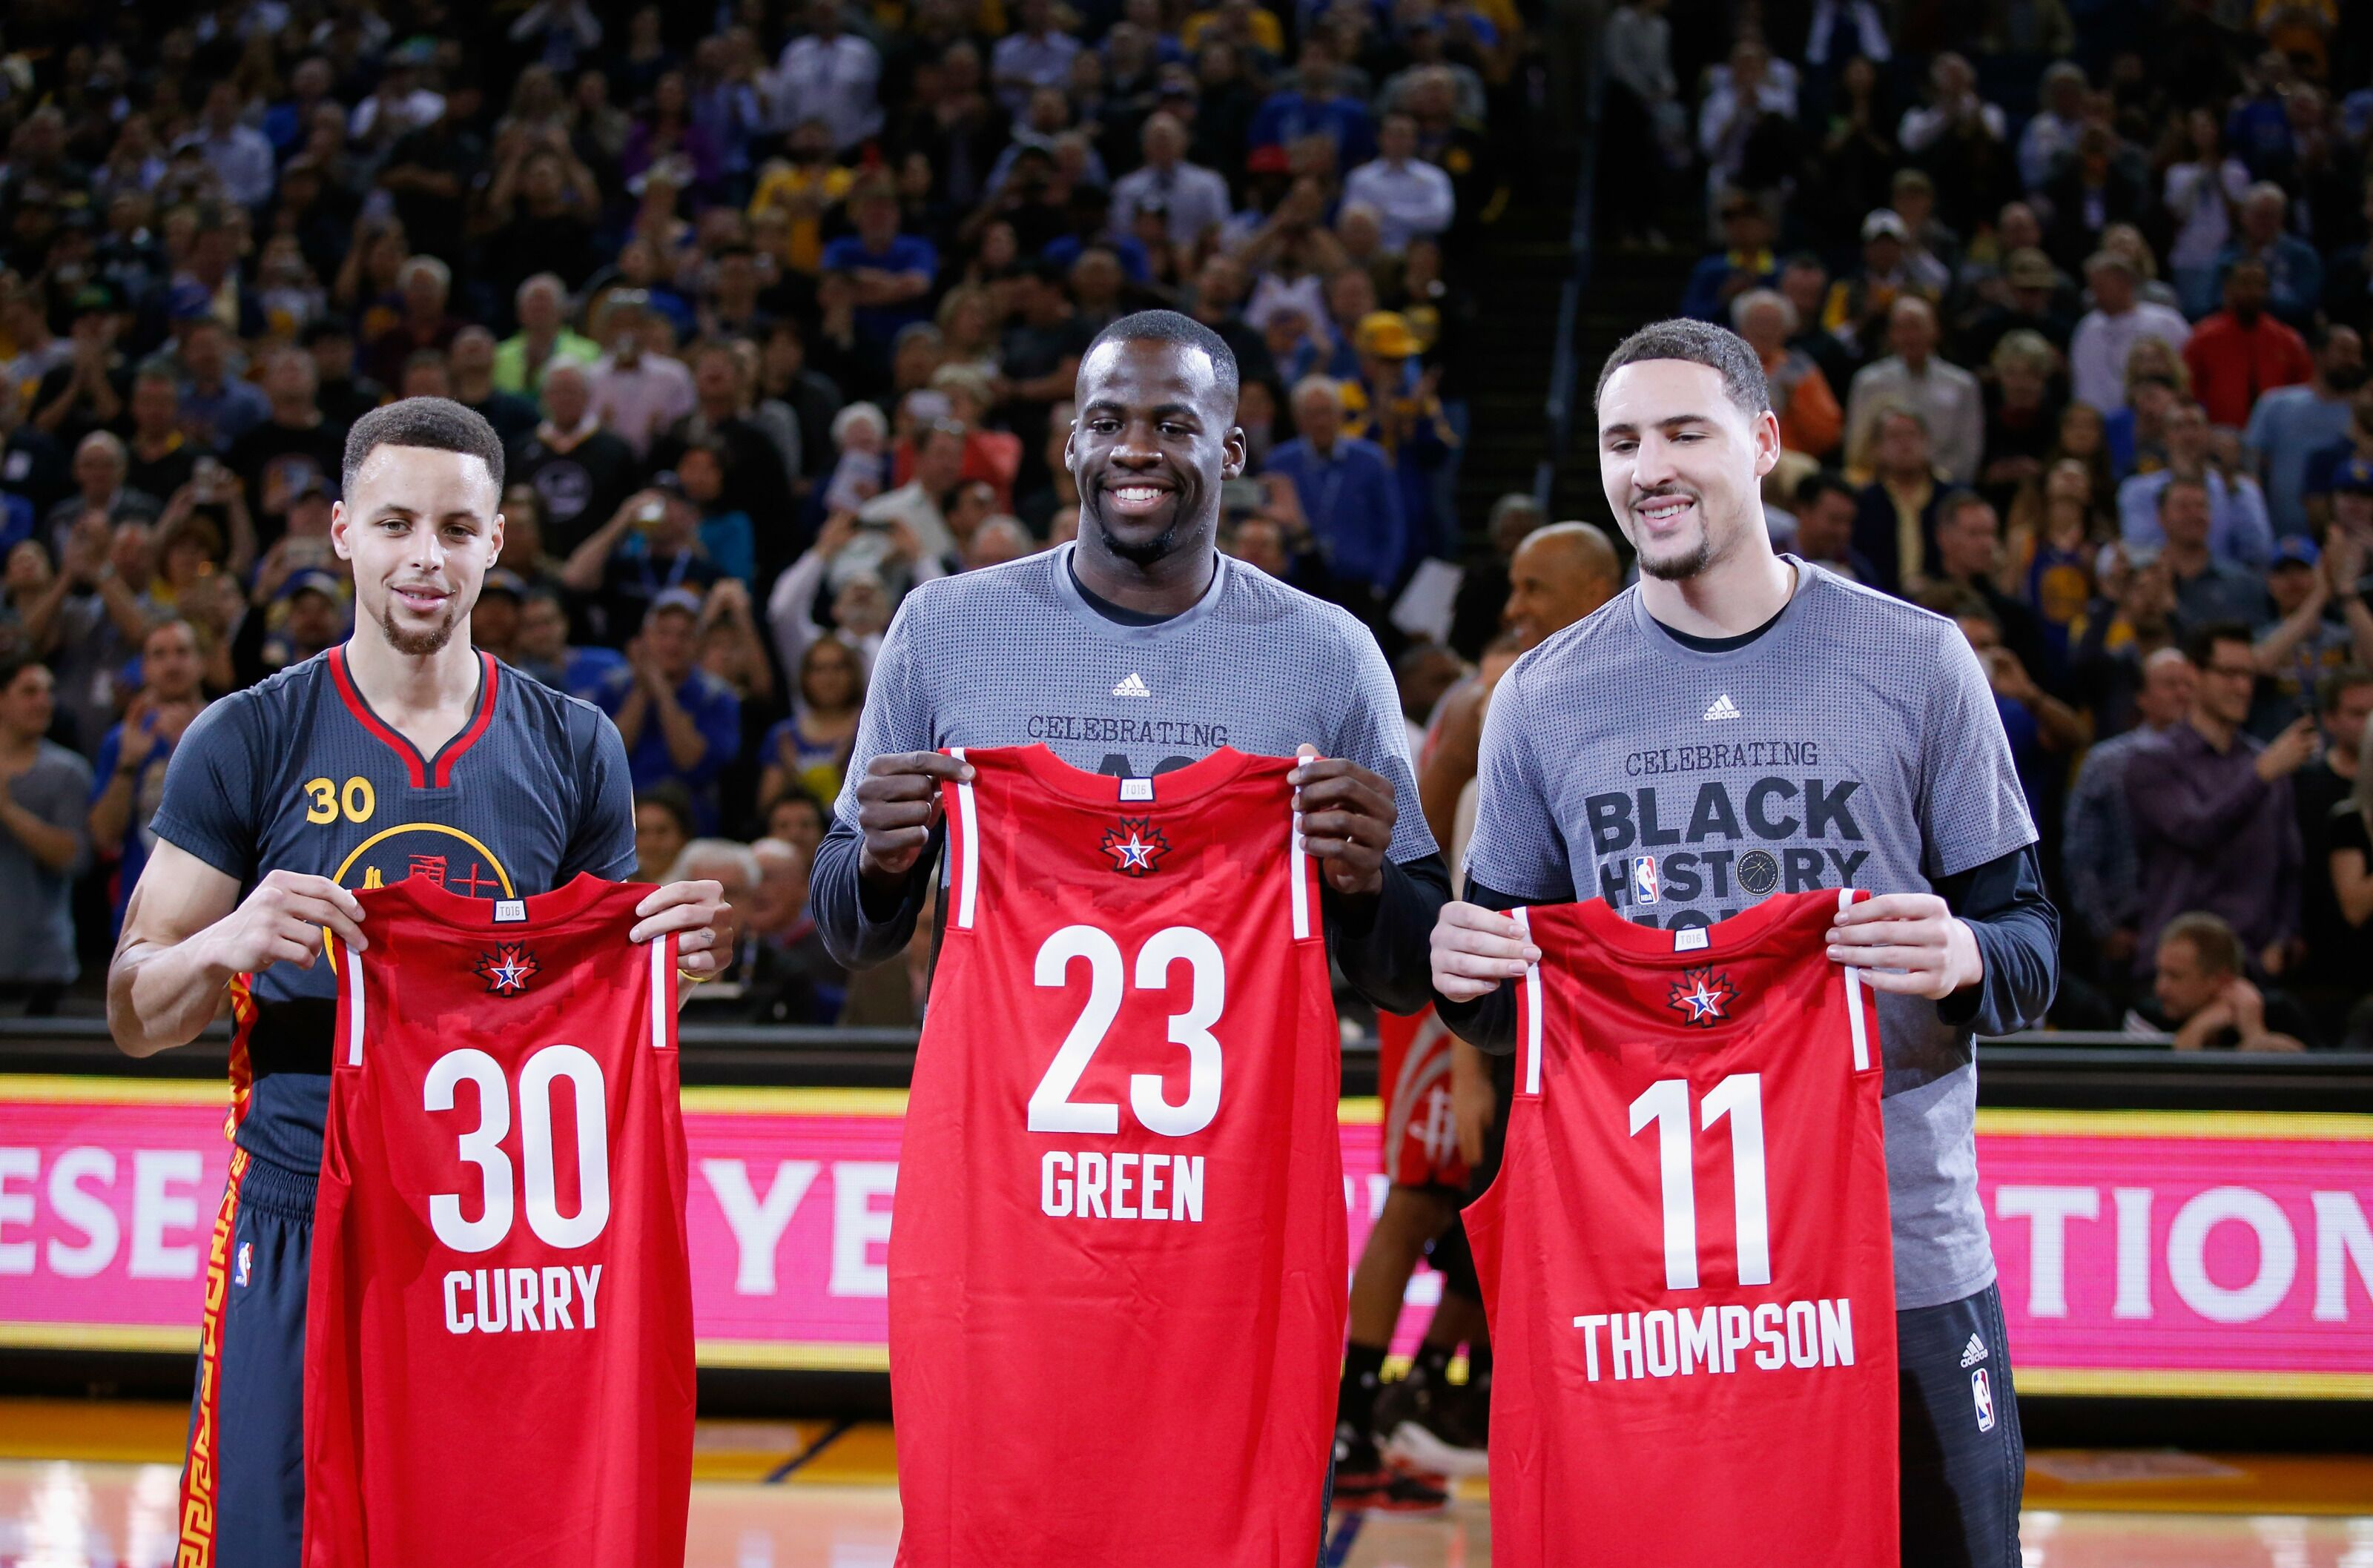 NBA All-Star Weekend isn't the same without Golden State Warriors